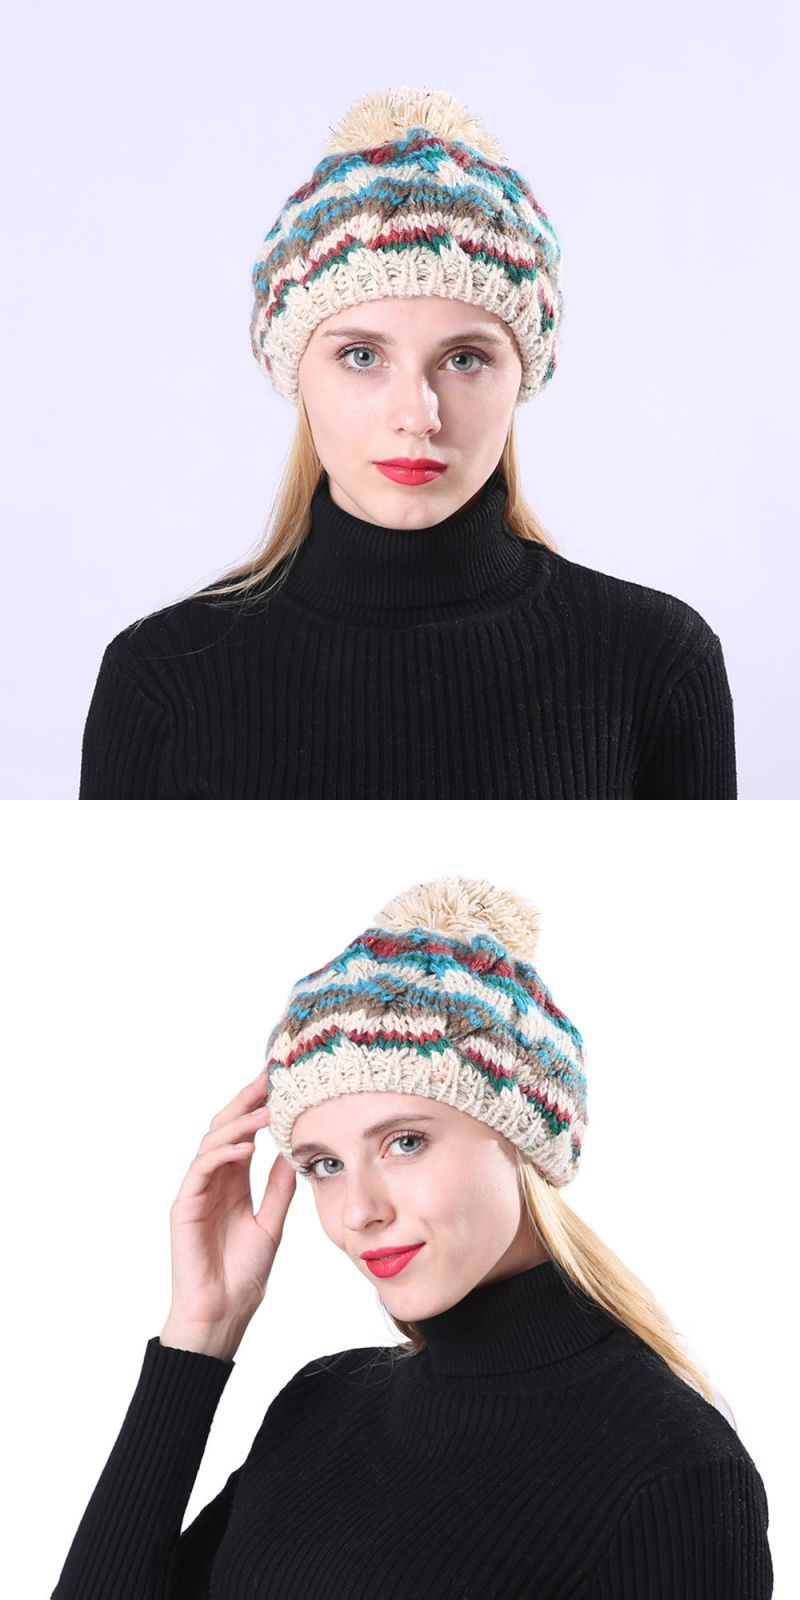 6214670879a Cable knitted bobble hat plain mens womens beanie warm winter pom wooly cap  women s knitted fashion caps for women hats winter  acrylic  adult  women  ...